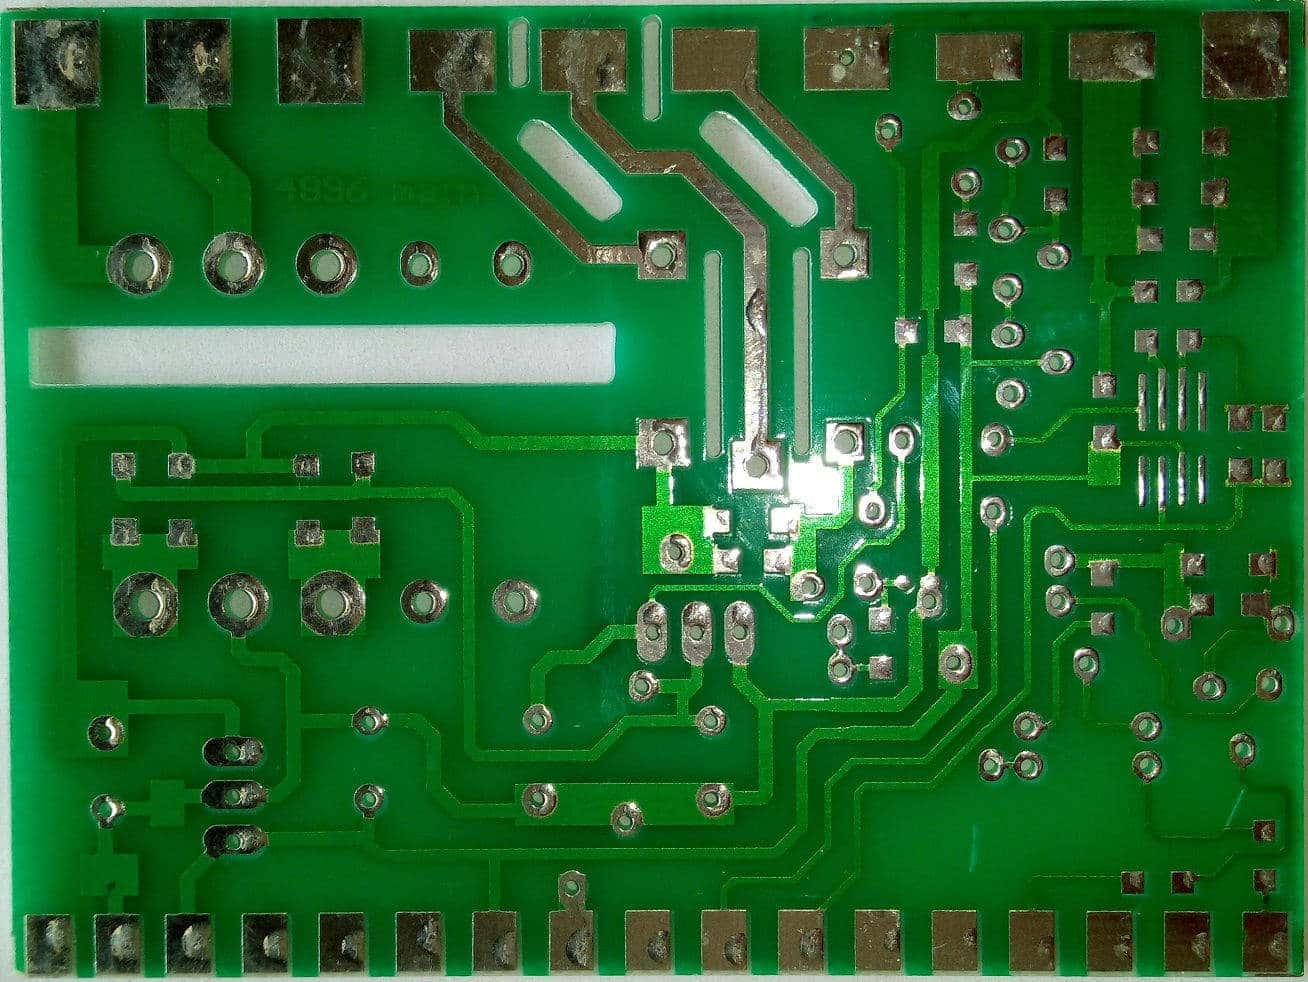 Metro Electronics Gandhinagar Sector 24 Printed Circuit Board Boards Manufacturer High Technology Pcb Solutions Manufacturers In Gujarat Justdial